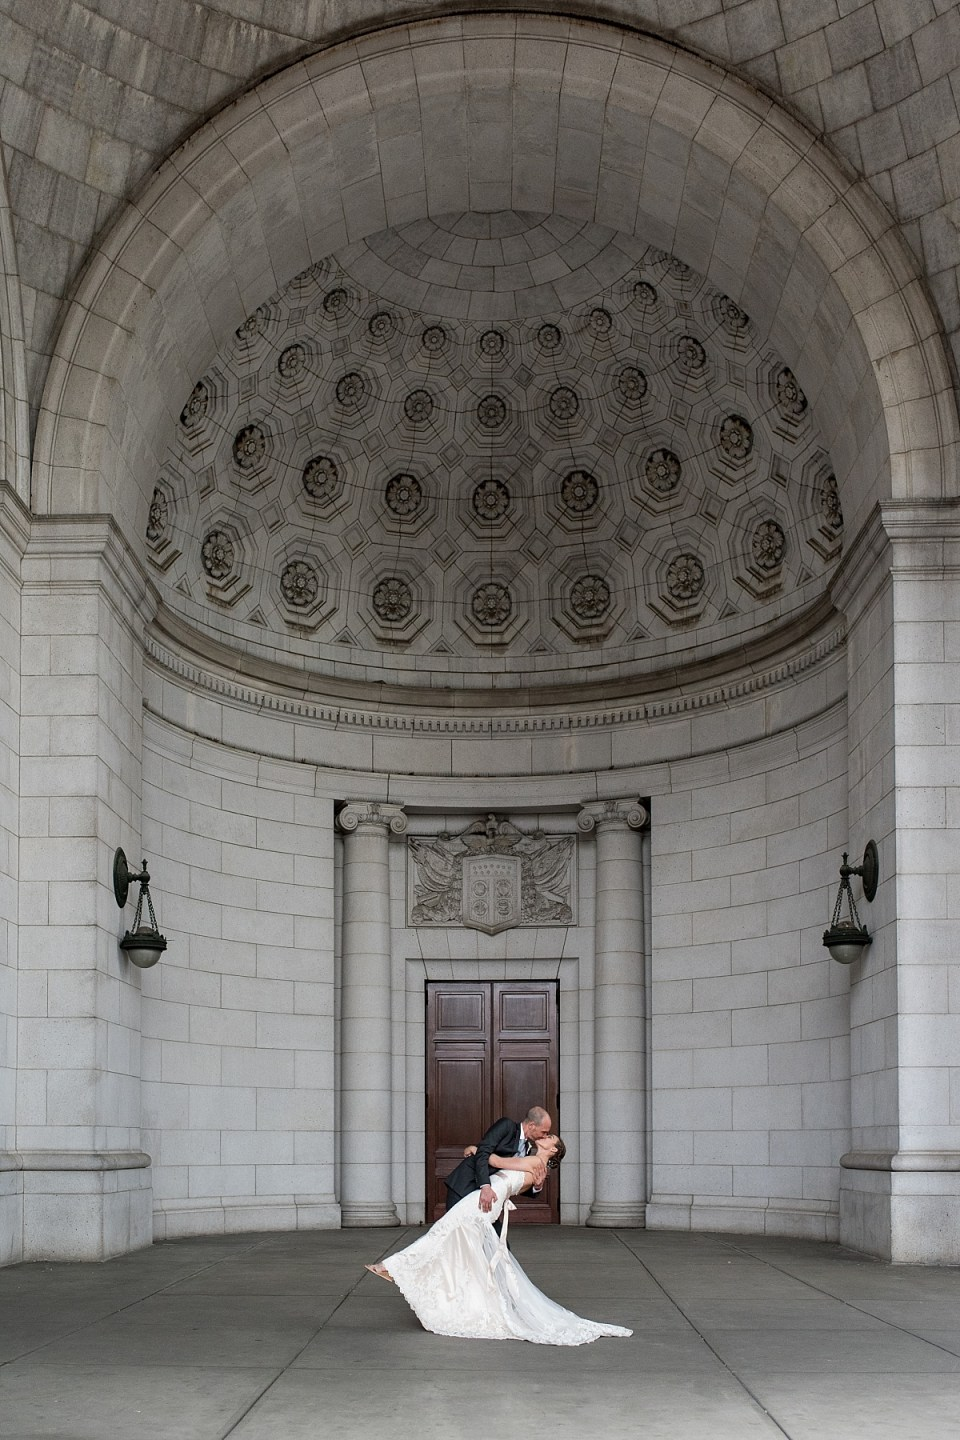 Wedding Photography at Union Station in Washington DC